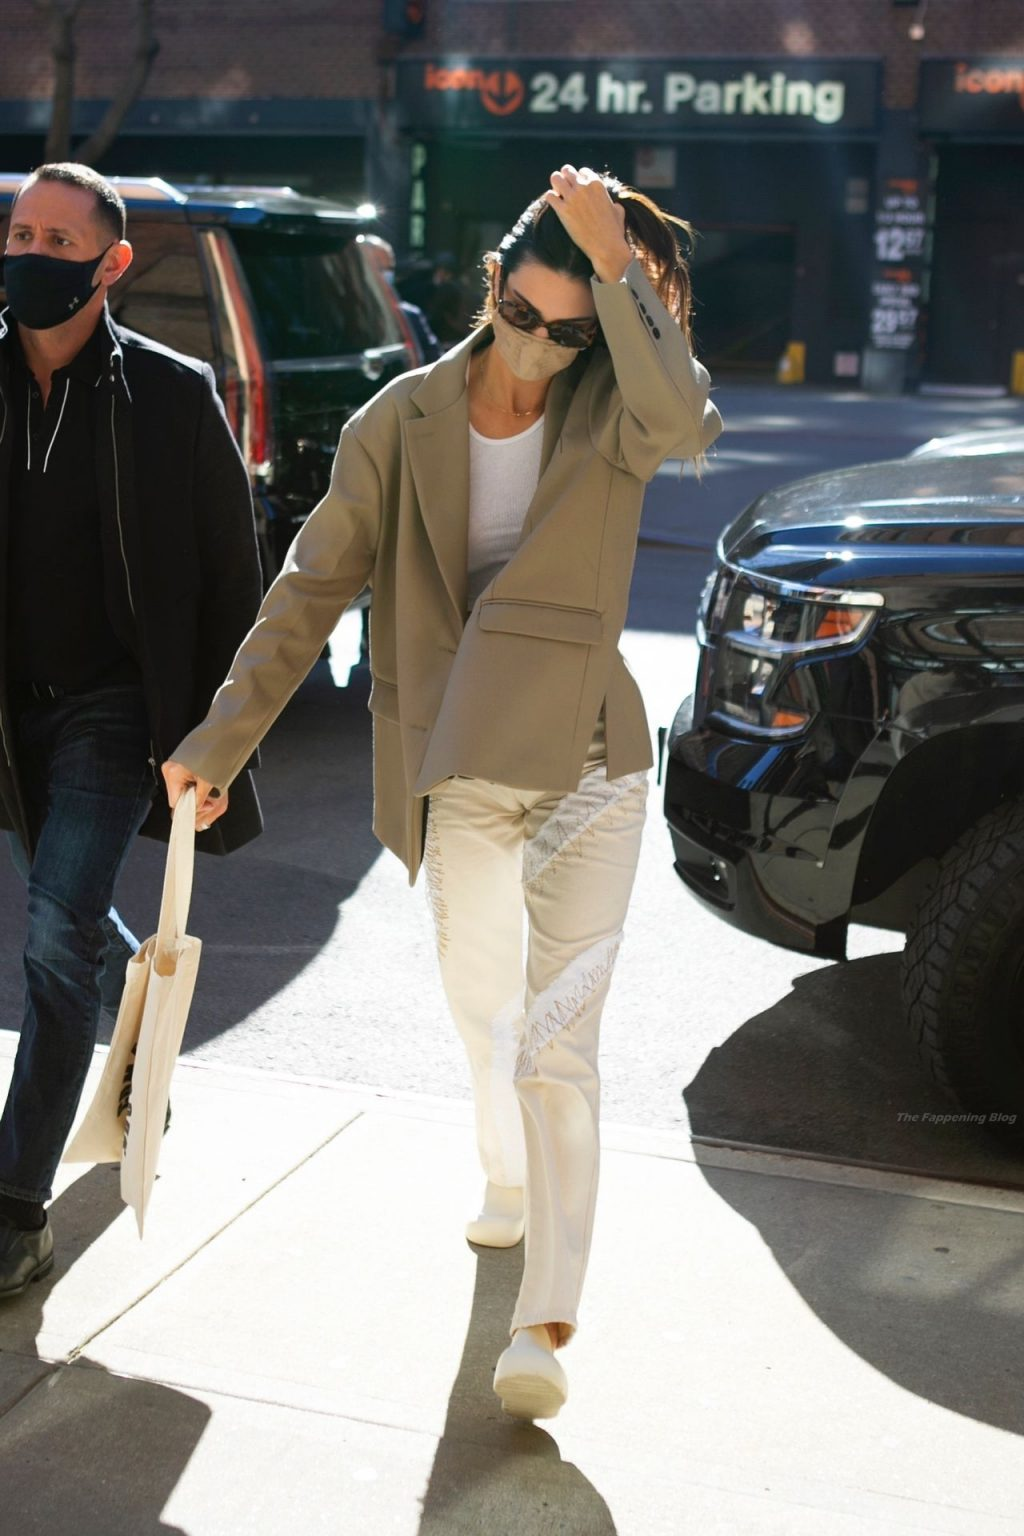 Kendall Jenner Heads Out in a Blazer and Crop Top in NYC (102 Photos)